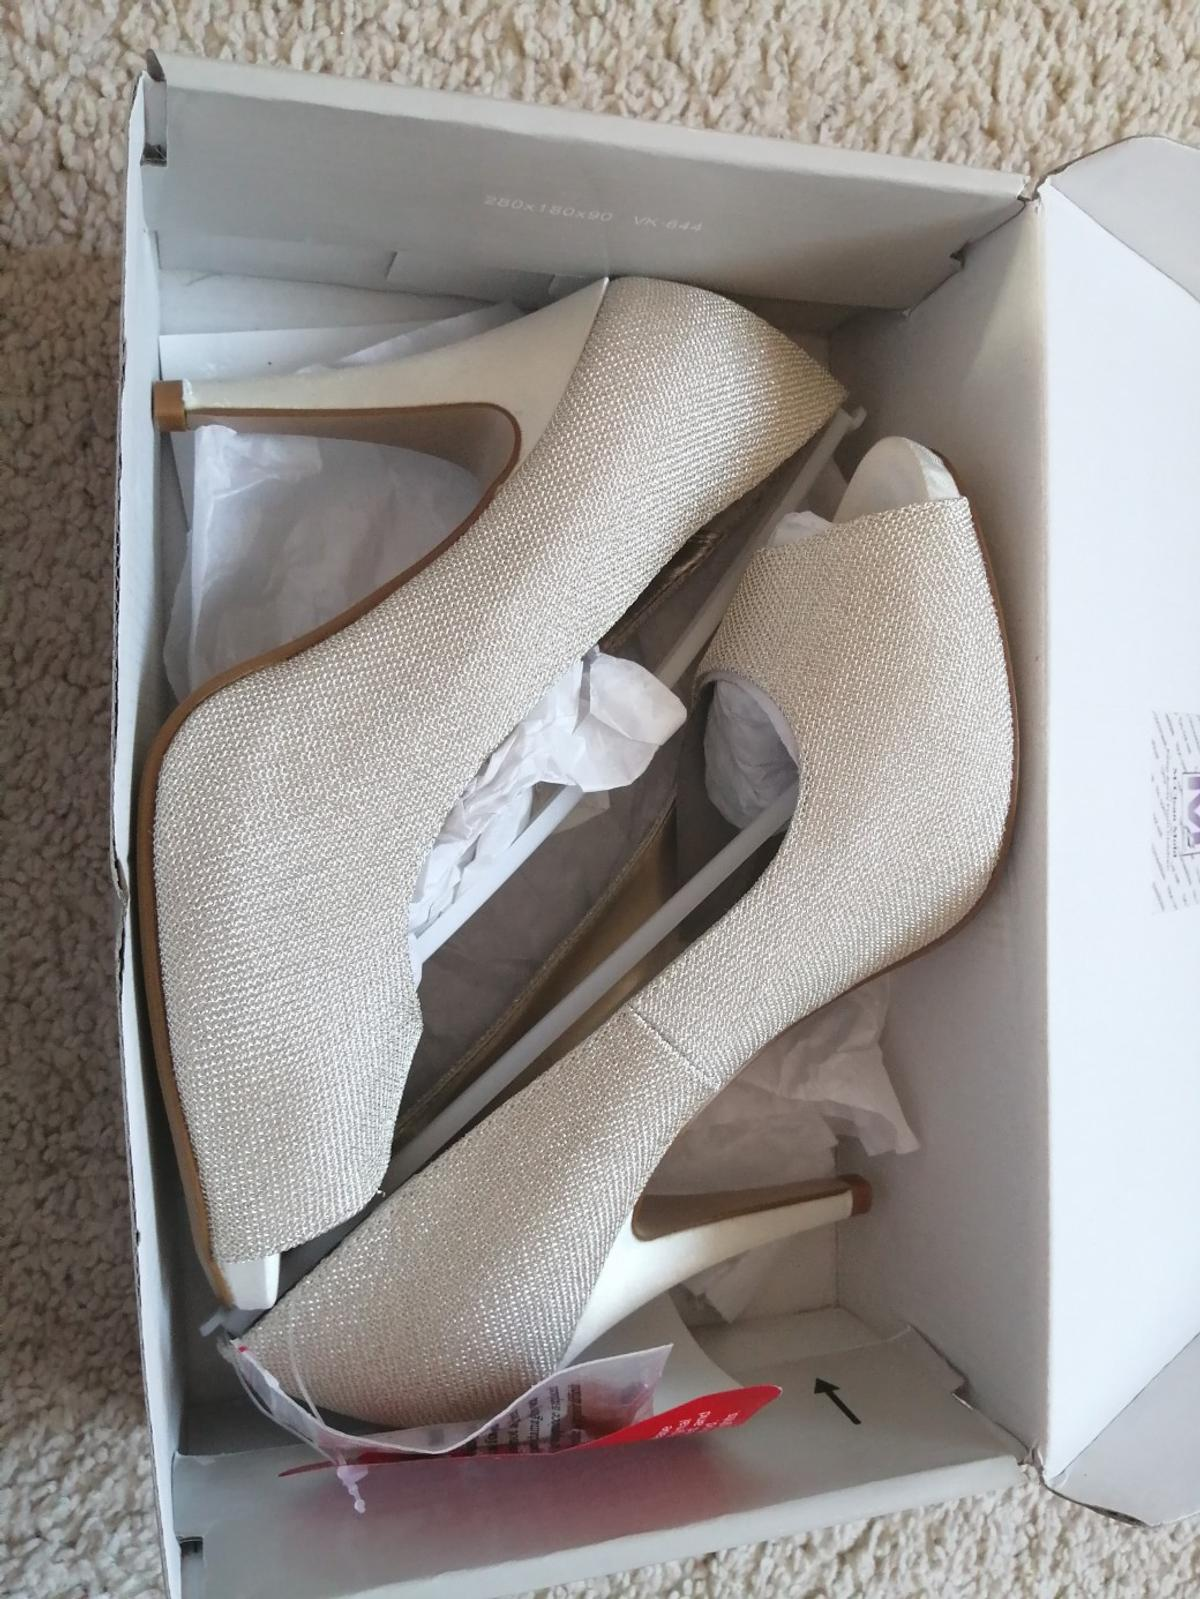 Gold/Cream Court Shoe. Brand new never been worn. Size 5.